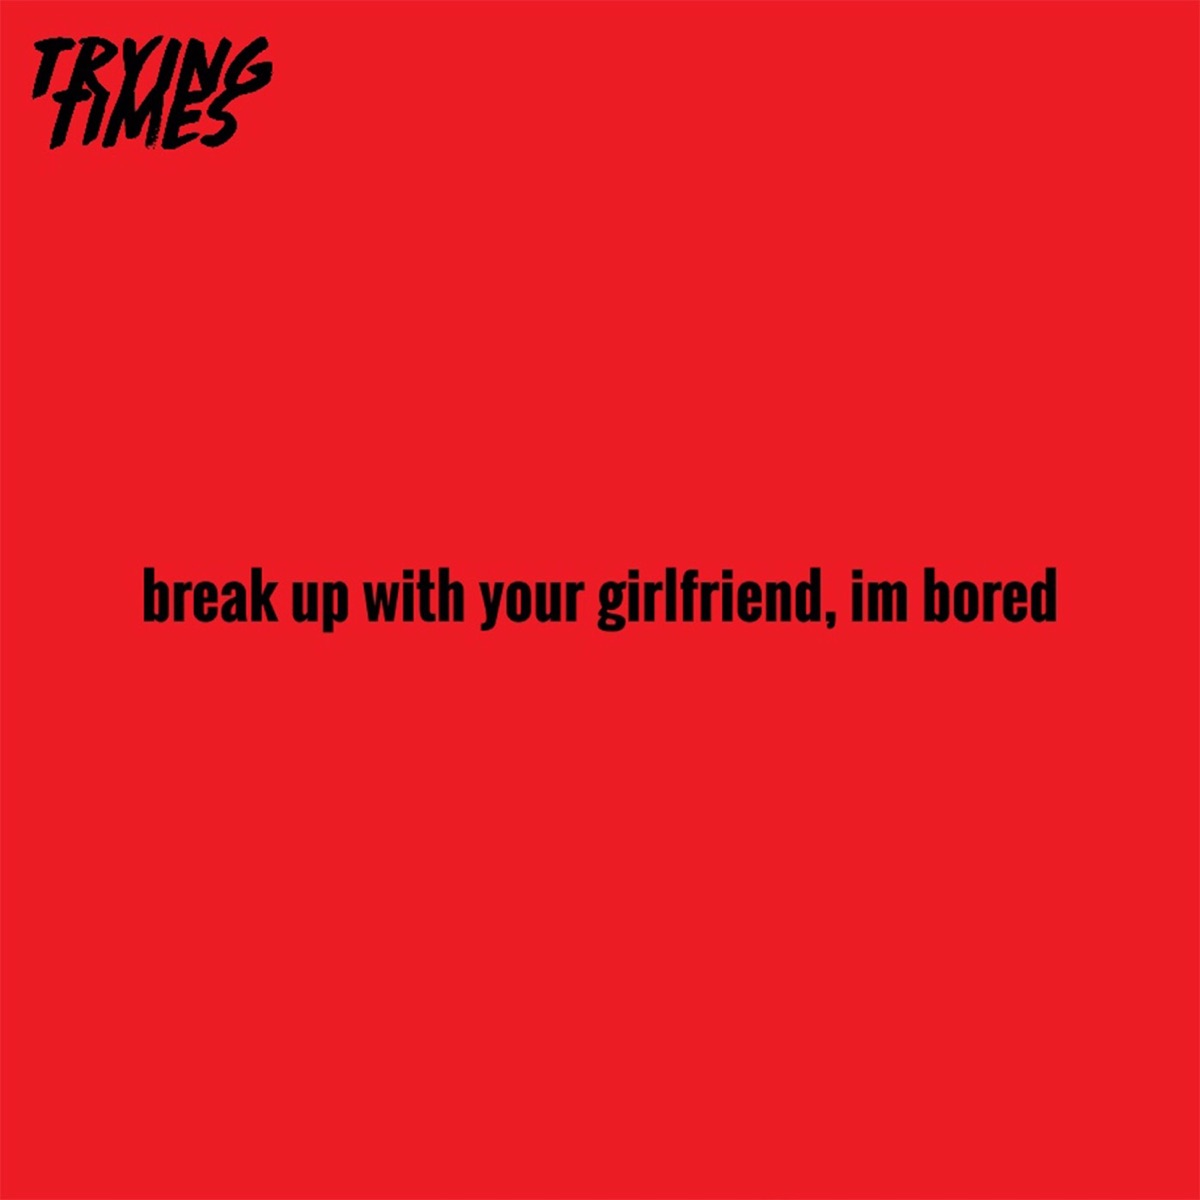 break up with your girlfriend i'm bored Male Version - Single Trying Times CD cover